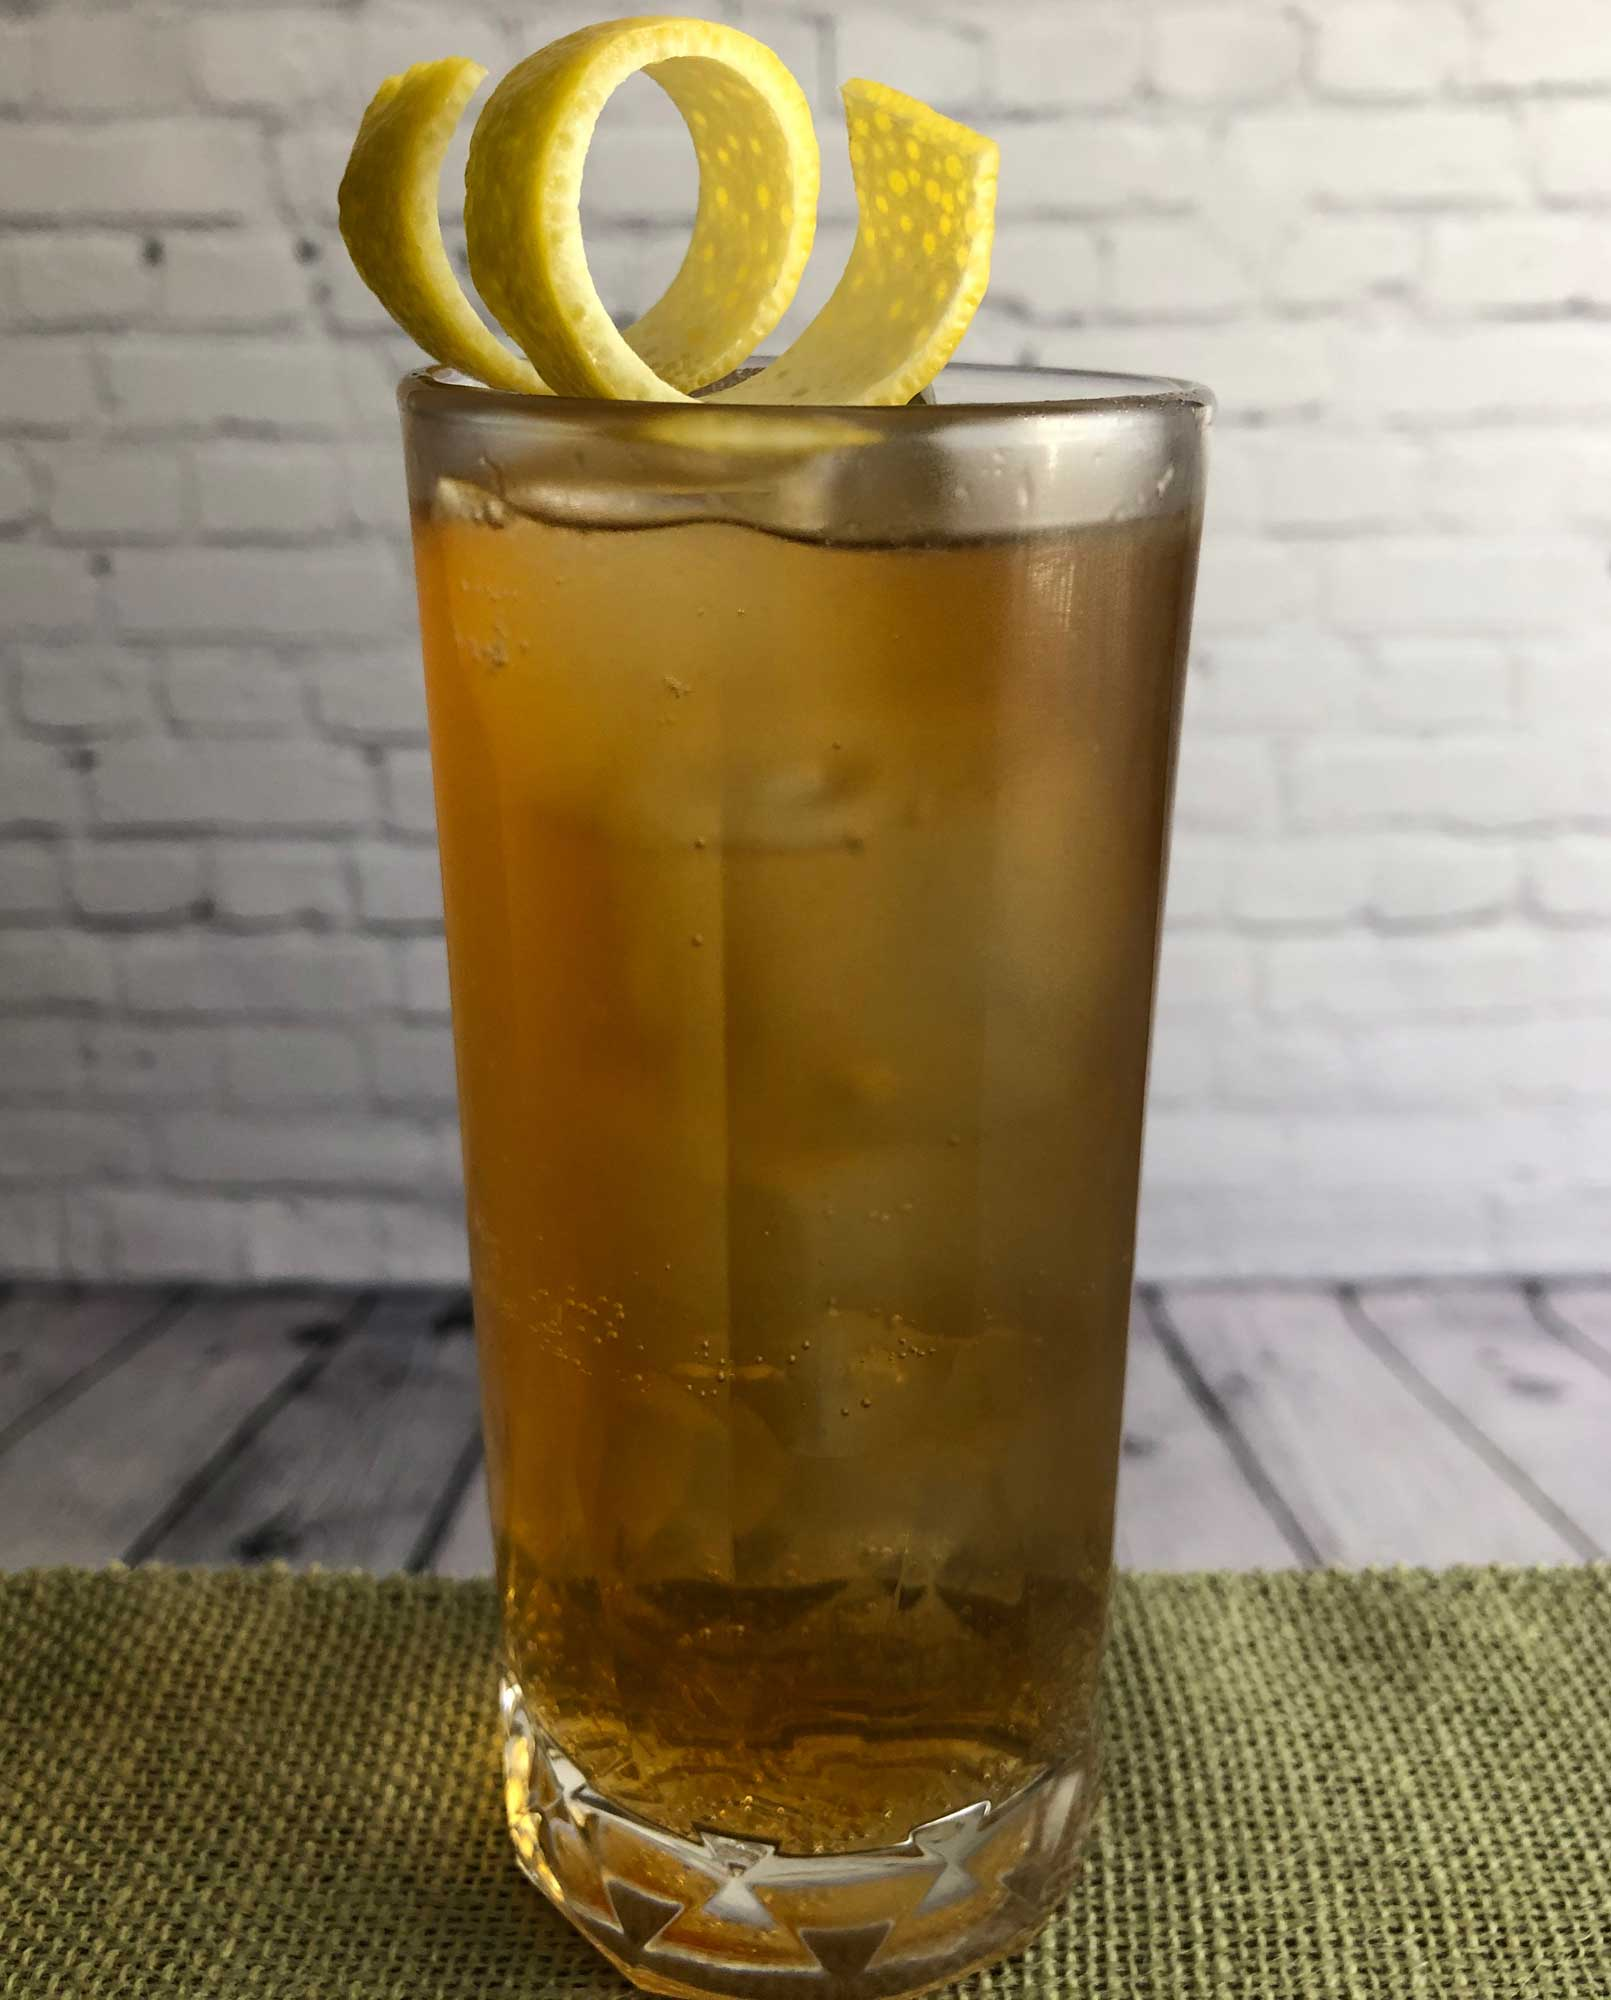 An example of the A Highball for Monte, the mixed drink (highball) featuring ginger beer, Cardamaro Vino Amaro, and lemon juice; photo by Lee Edwards